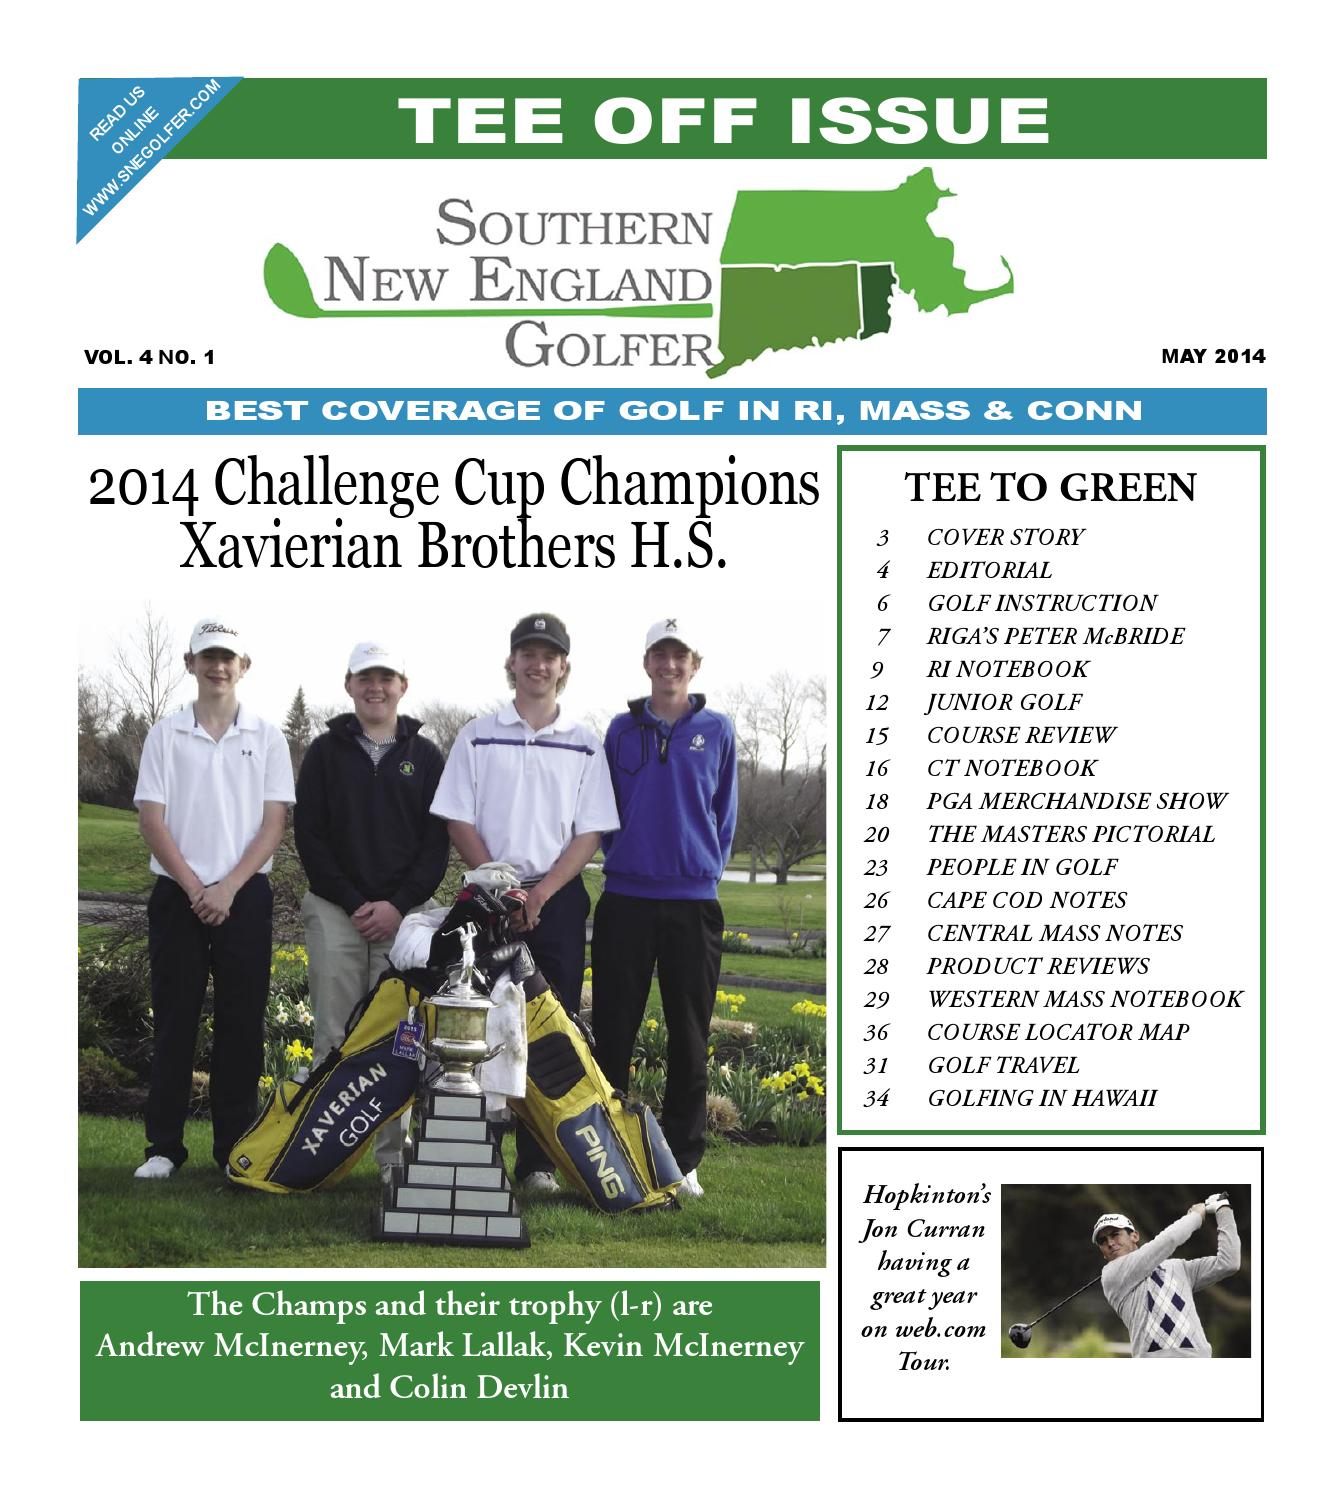 Southern New England Golfer May 2014 by Southern New England